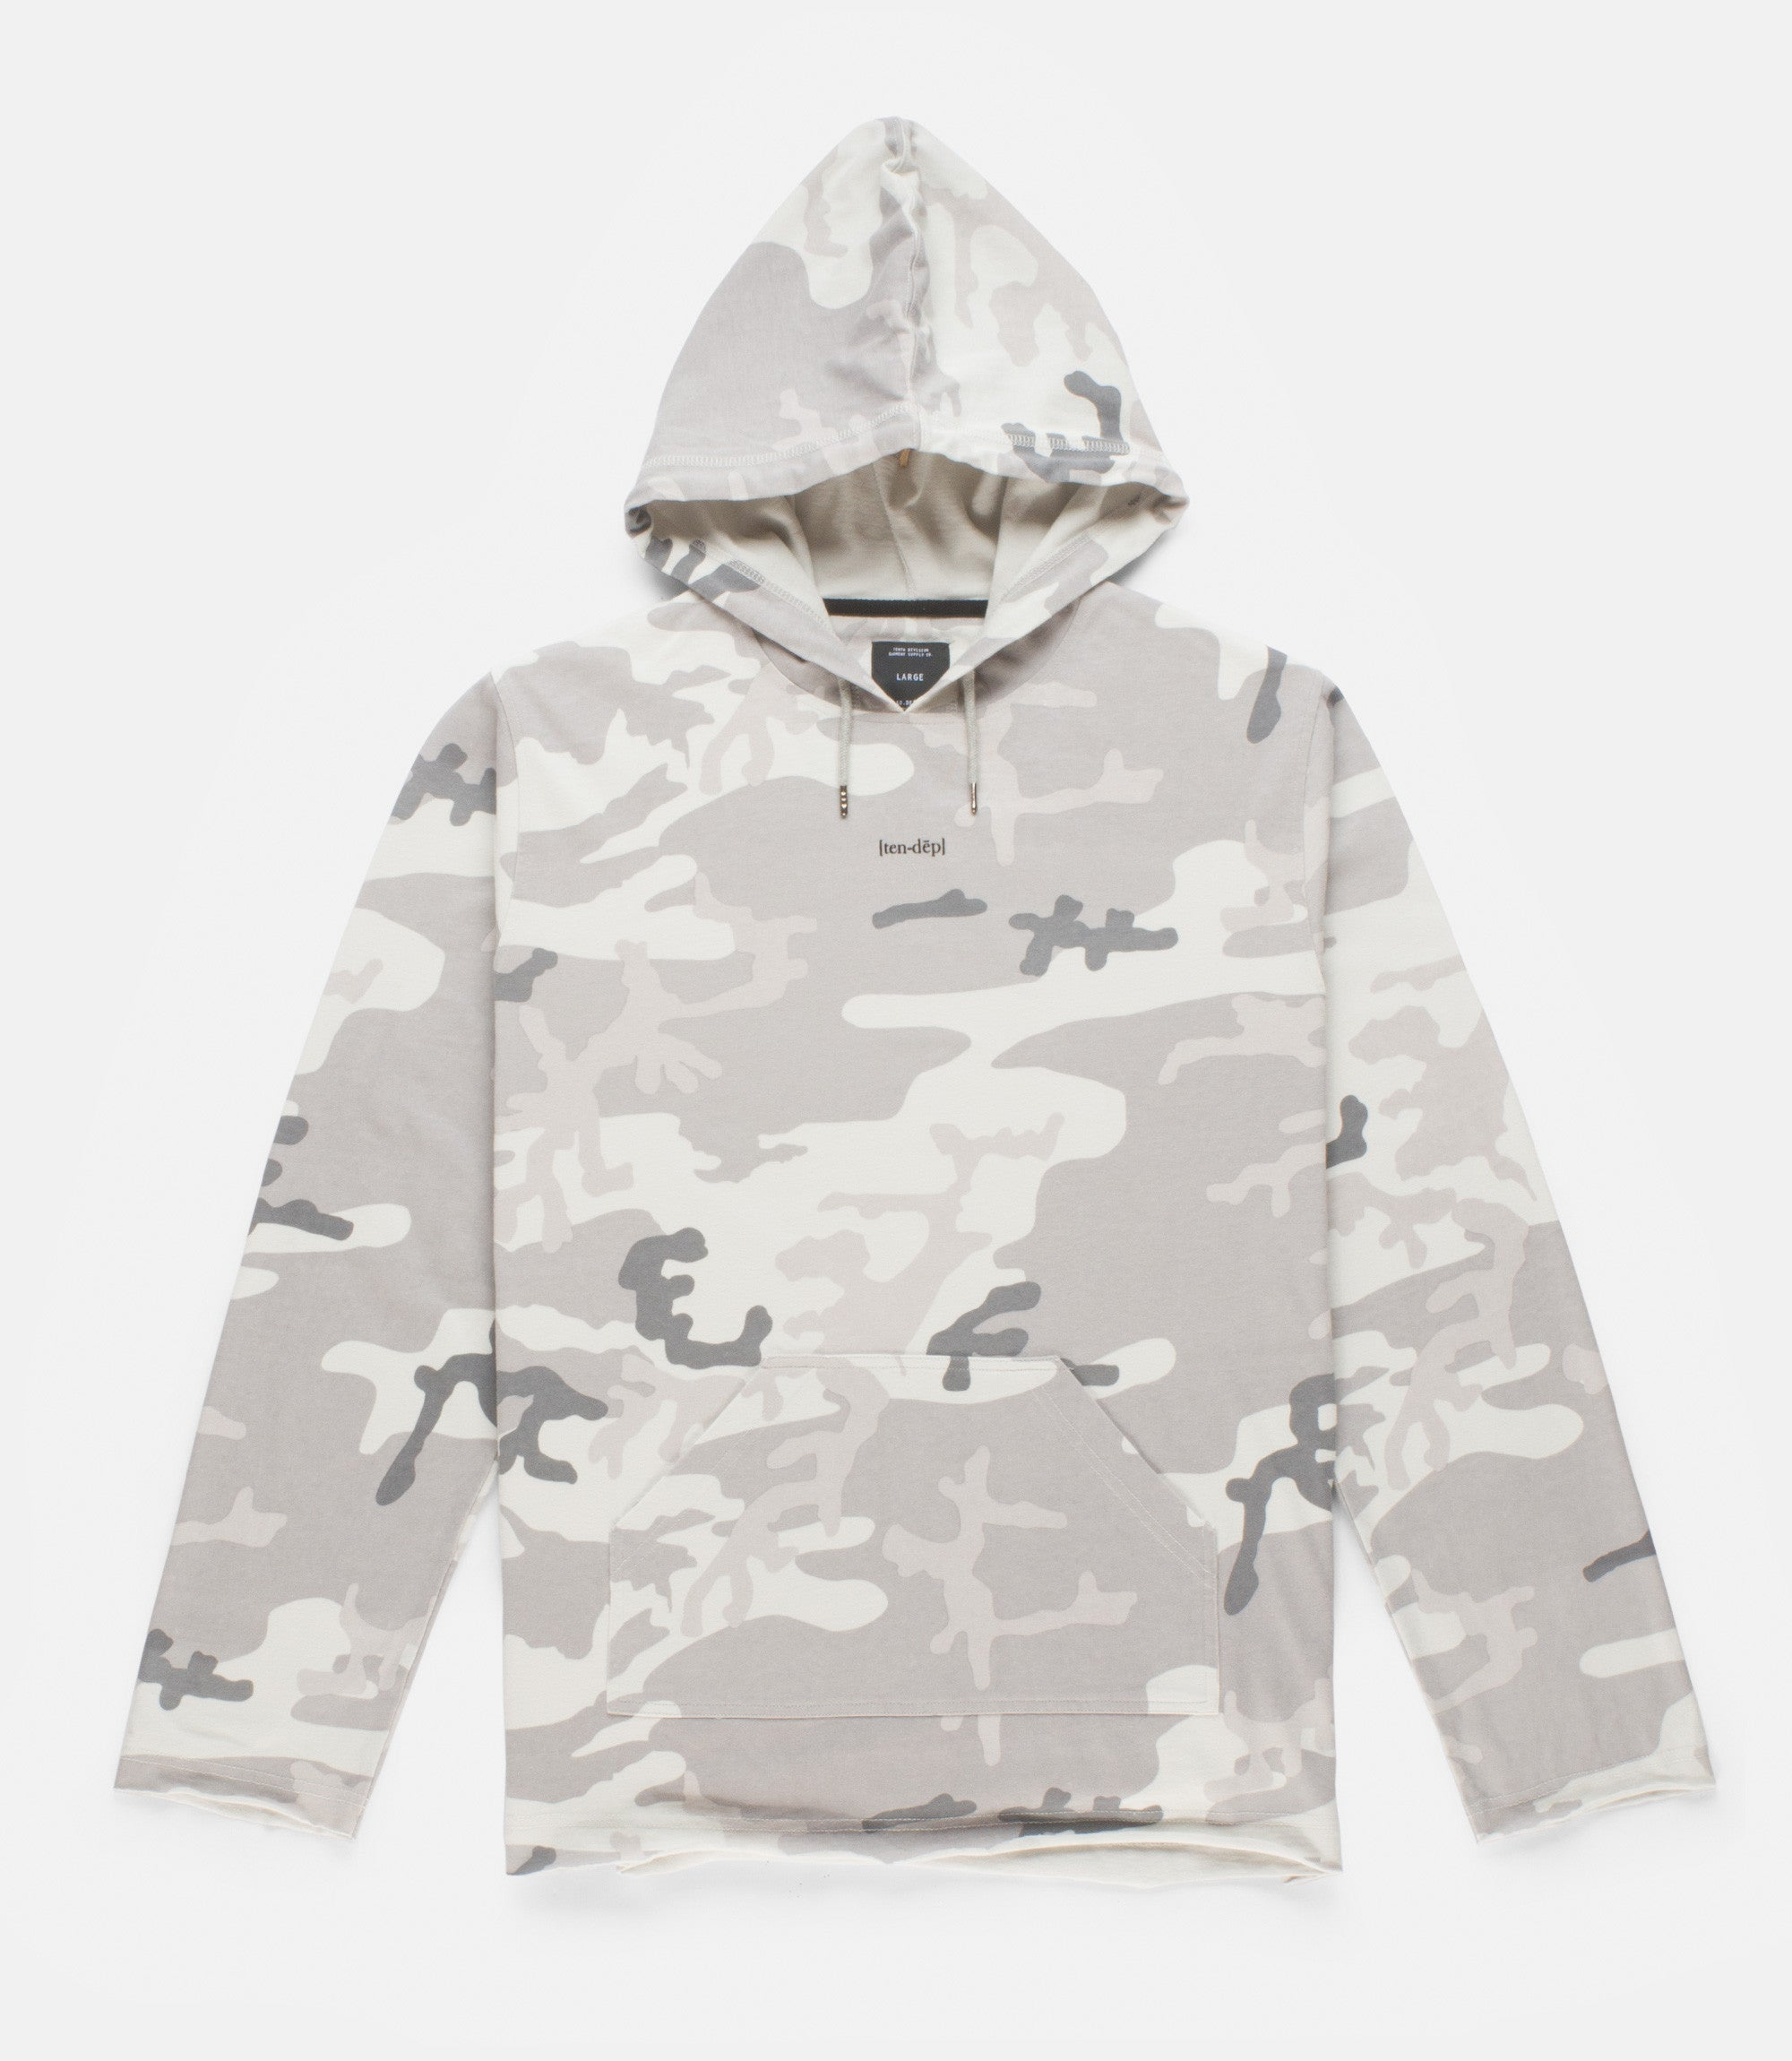 10Deep - Arctic Woodland Hooded Men's Tee, Arctic Woodland - The Giant Peach